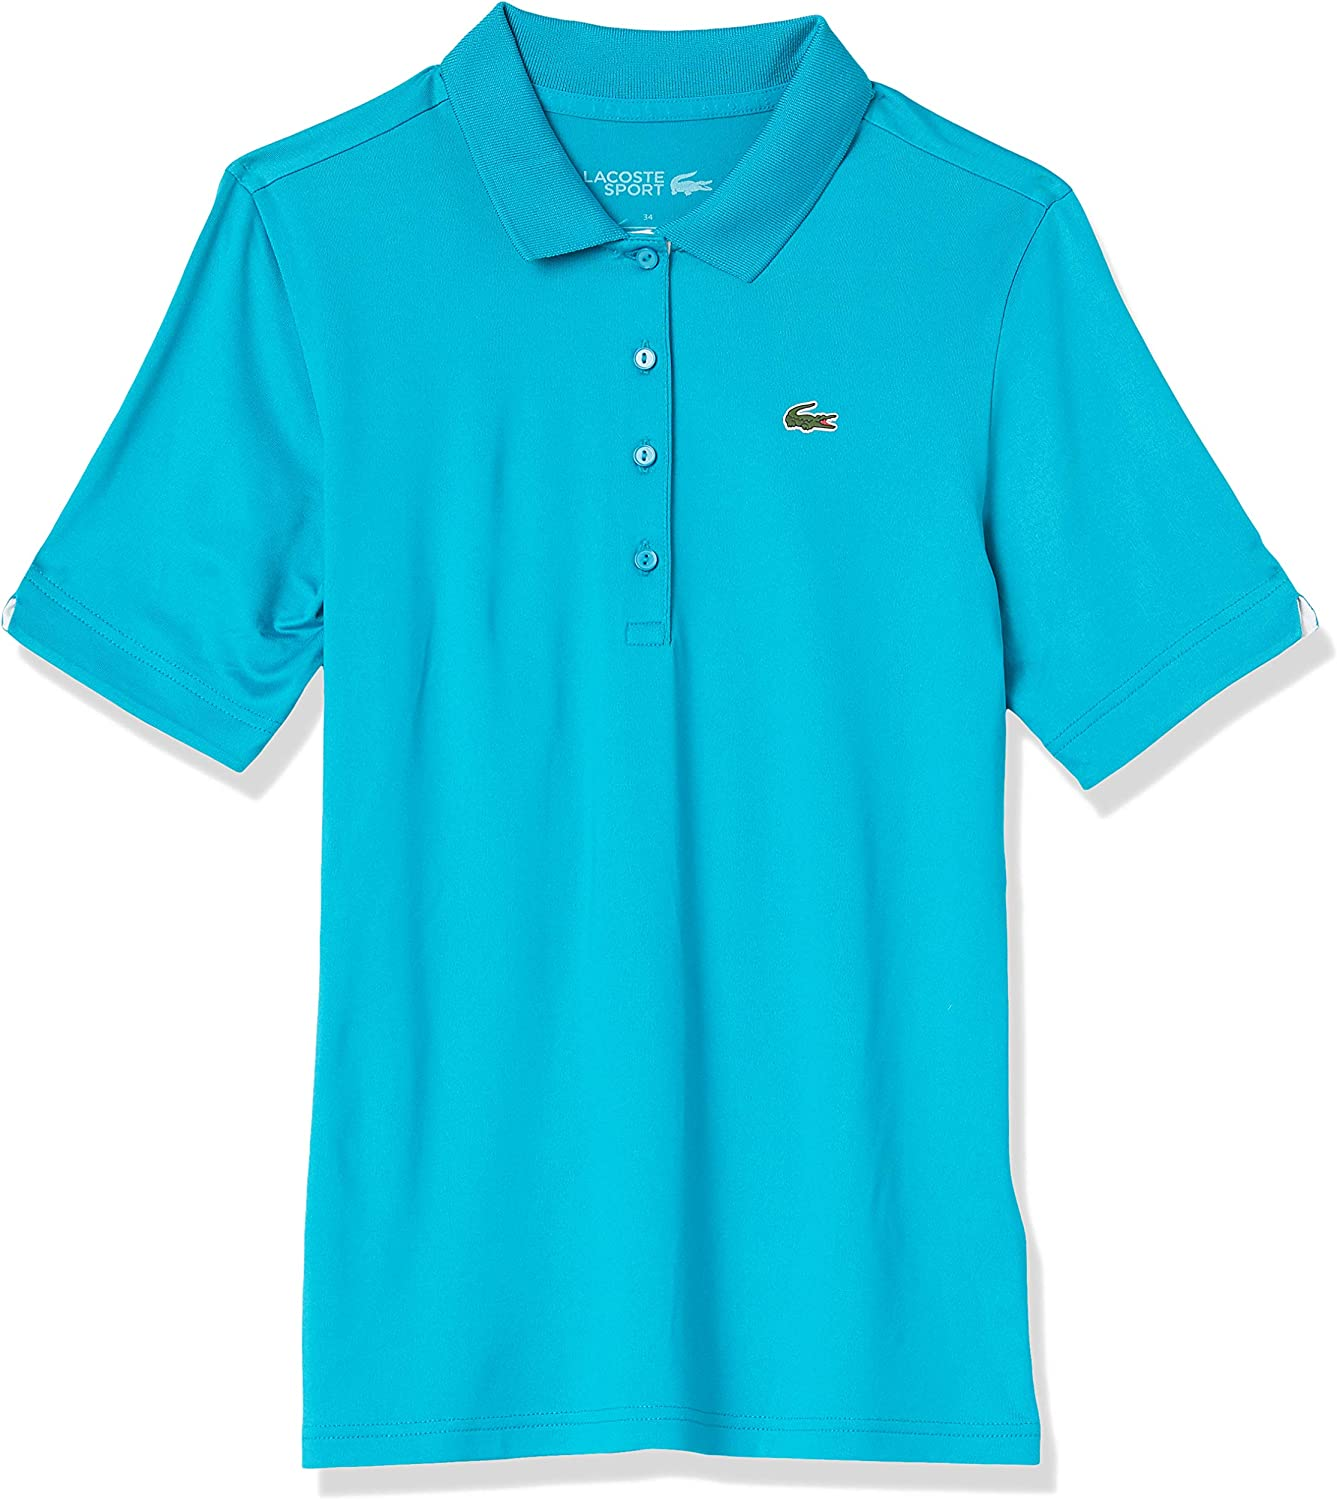 Lacoste Women's Sport Special Campaign Super Dry Super special price Polo Shirt Golf